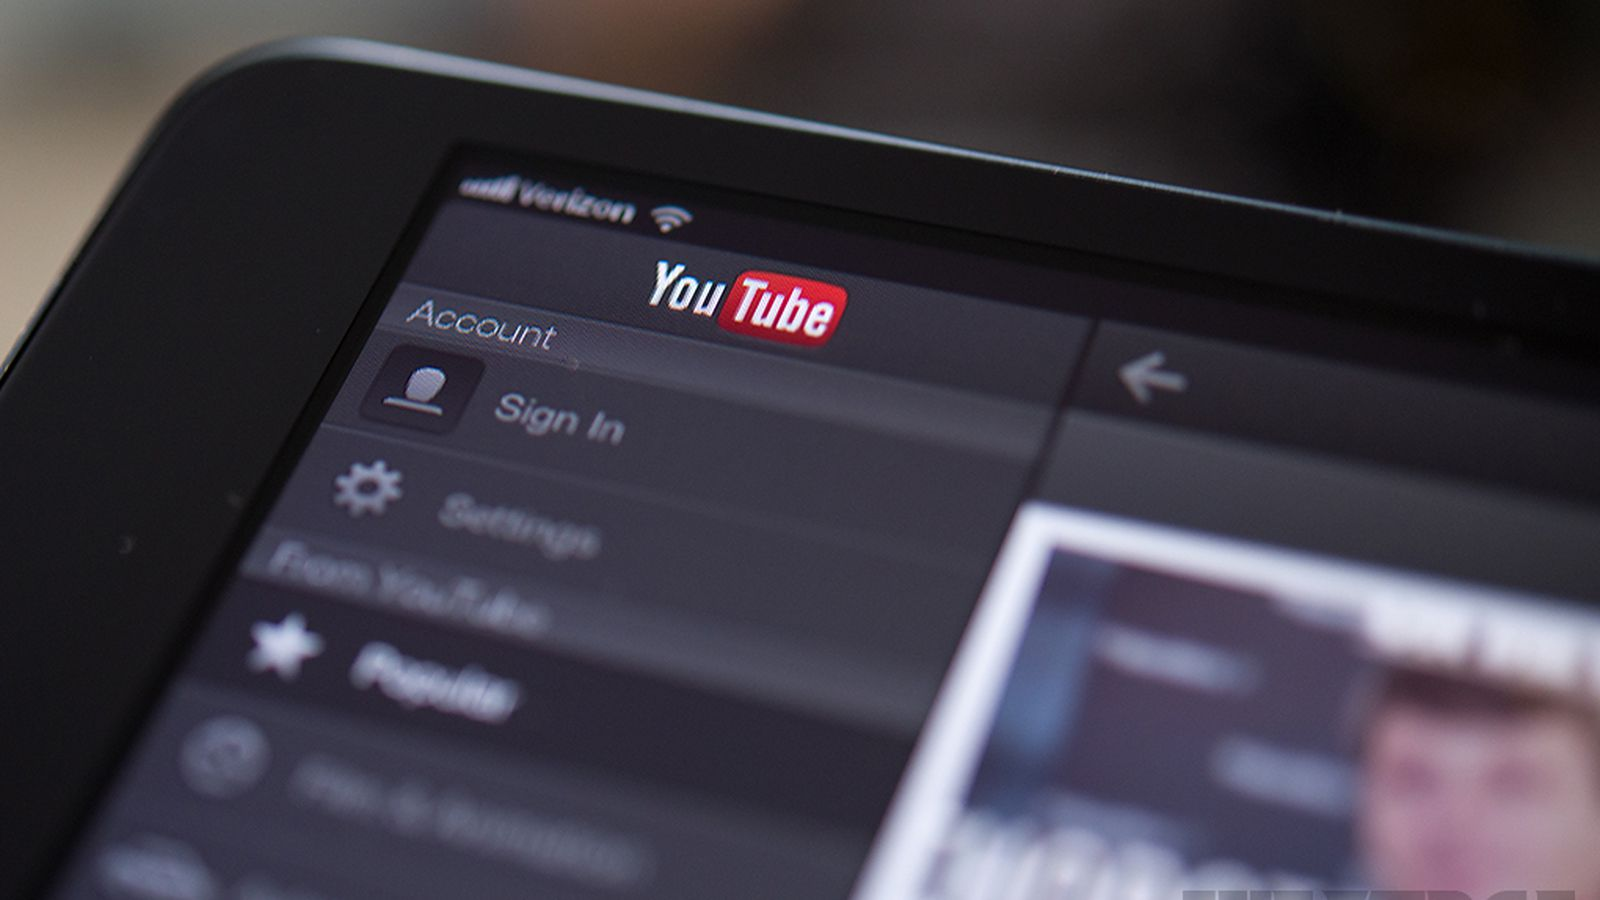 YouTube Announces Four New Steps that It's Taking to Combat Extremist Content